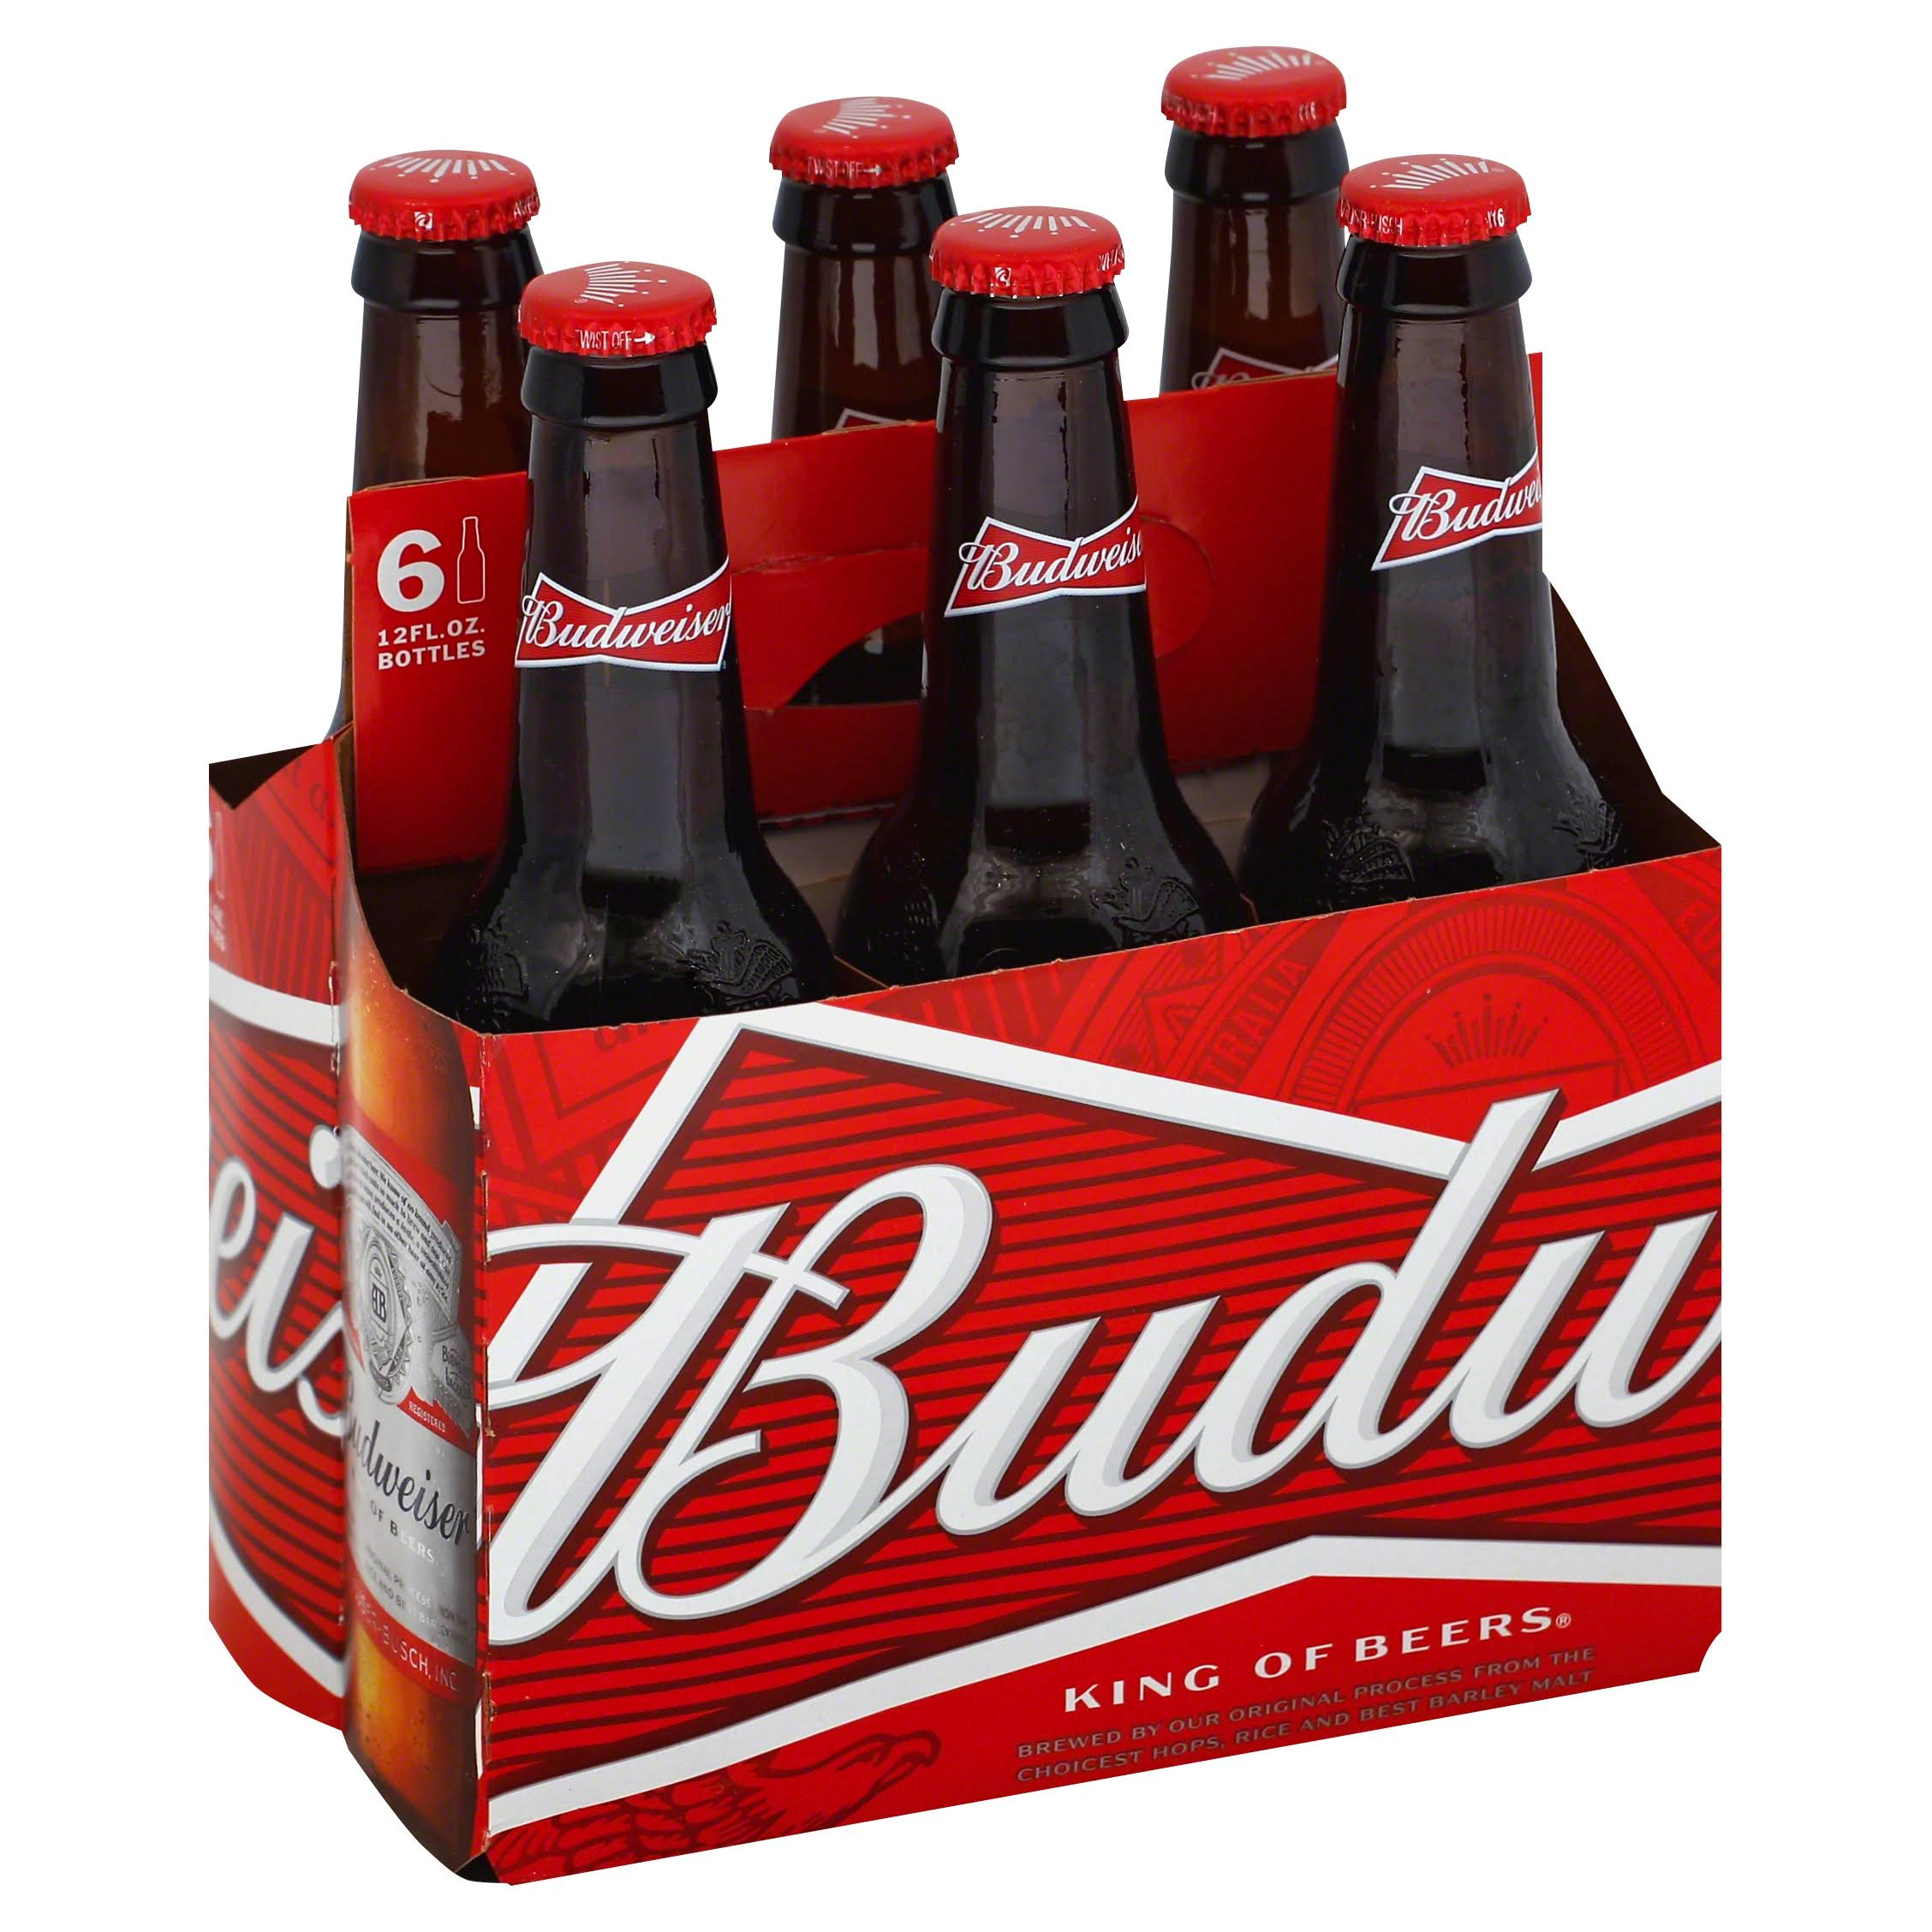 Budweiser Beer, Lager - 6 pack, 12 fl oz bottles